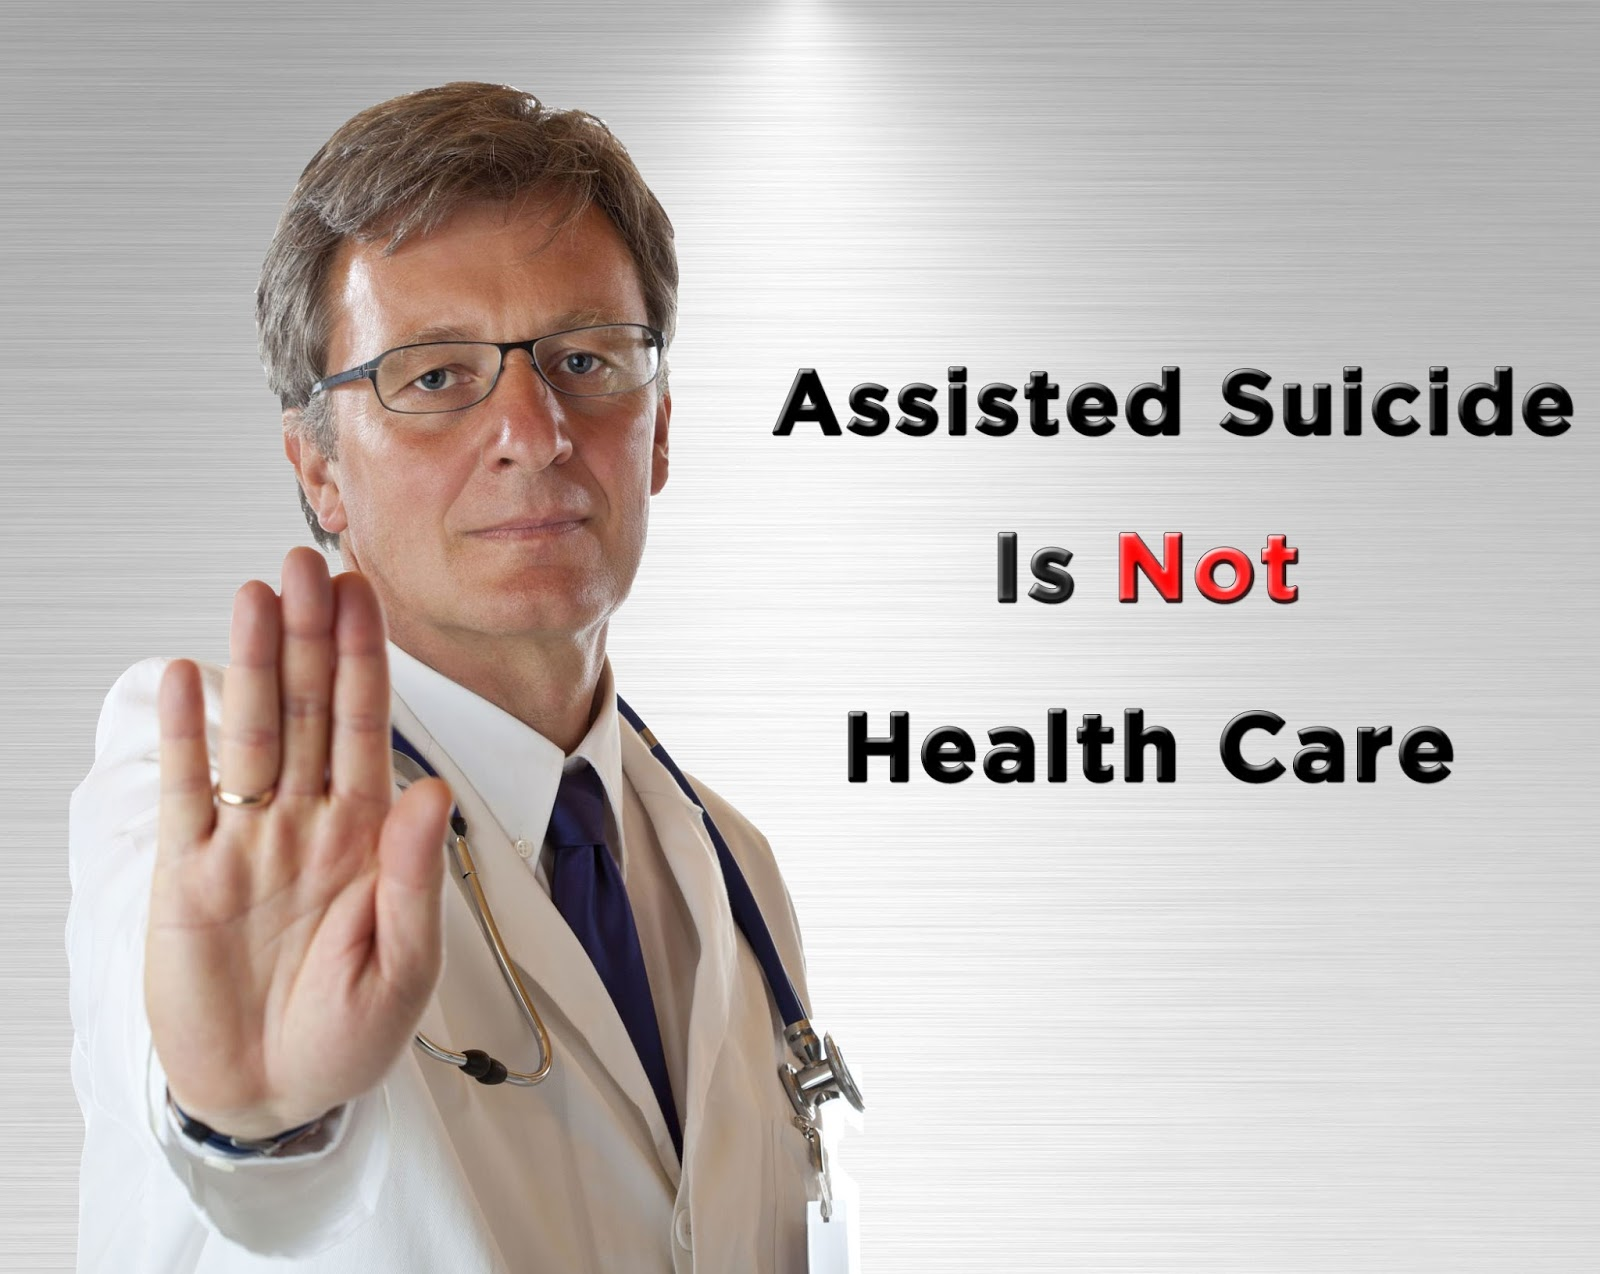 prepare a working draft for legalization of assisted suicide in the usa Inquirernet, news feature, jun nucum , posted: jul 12, 2017  oakland, california - california's recent legalization of assisted suicide is making filipinos, many of whom work in the health care industry, reflect on their religious beliefs.